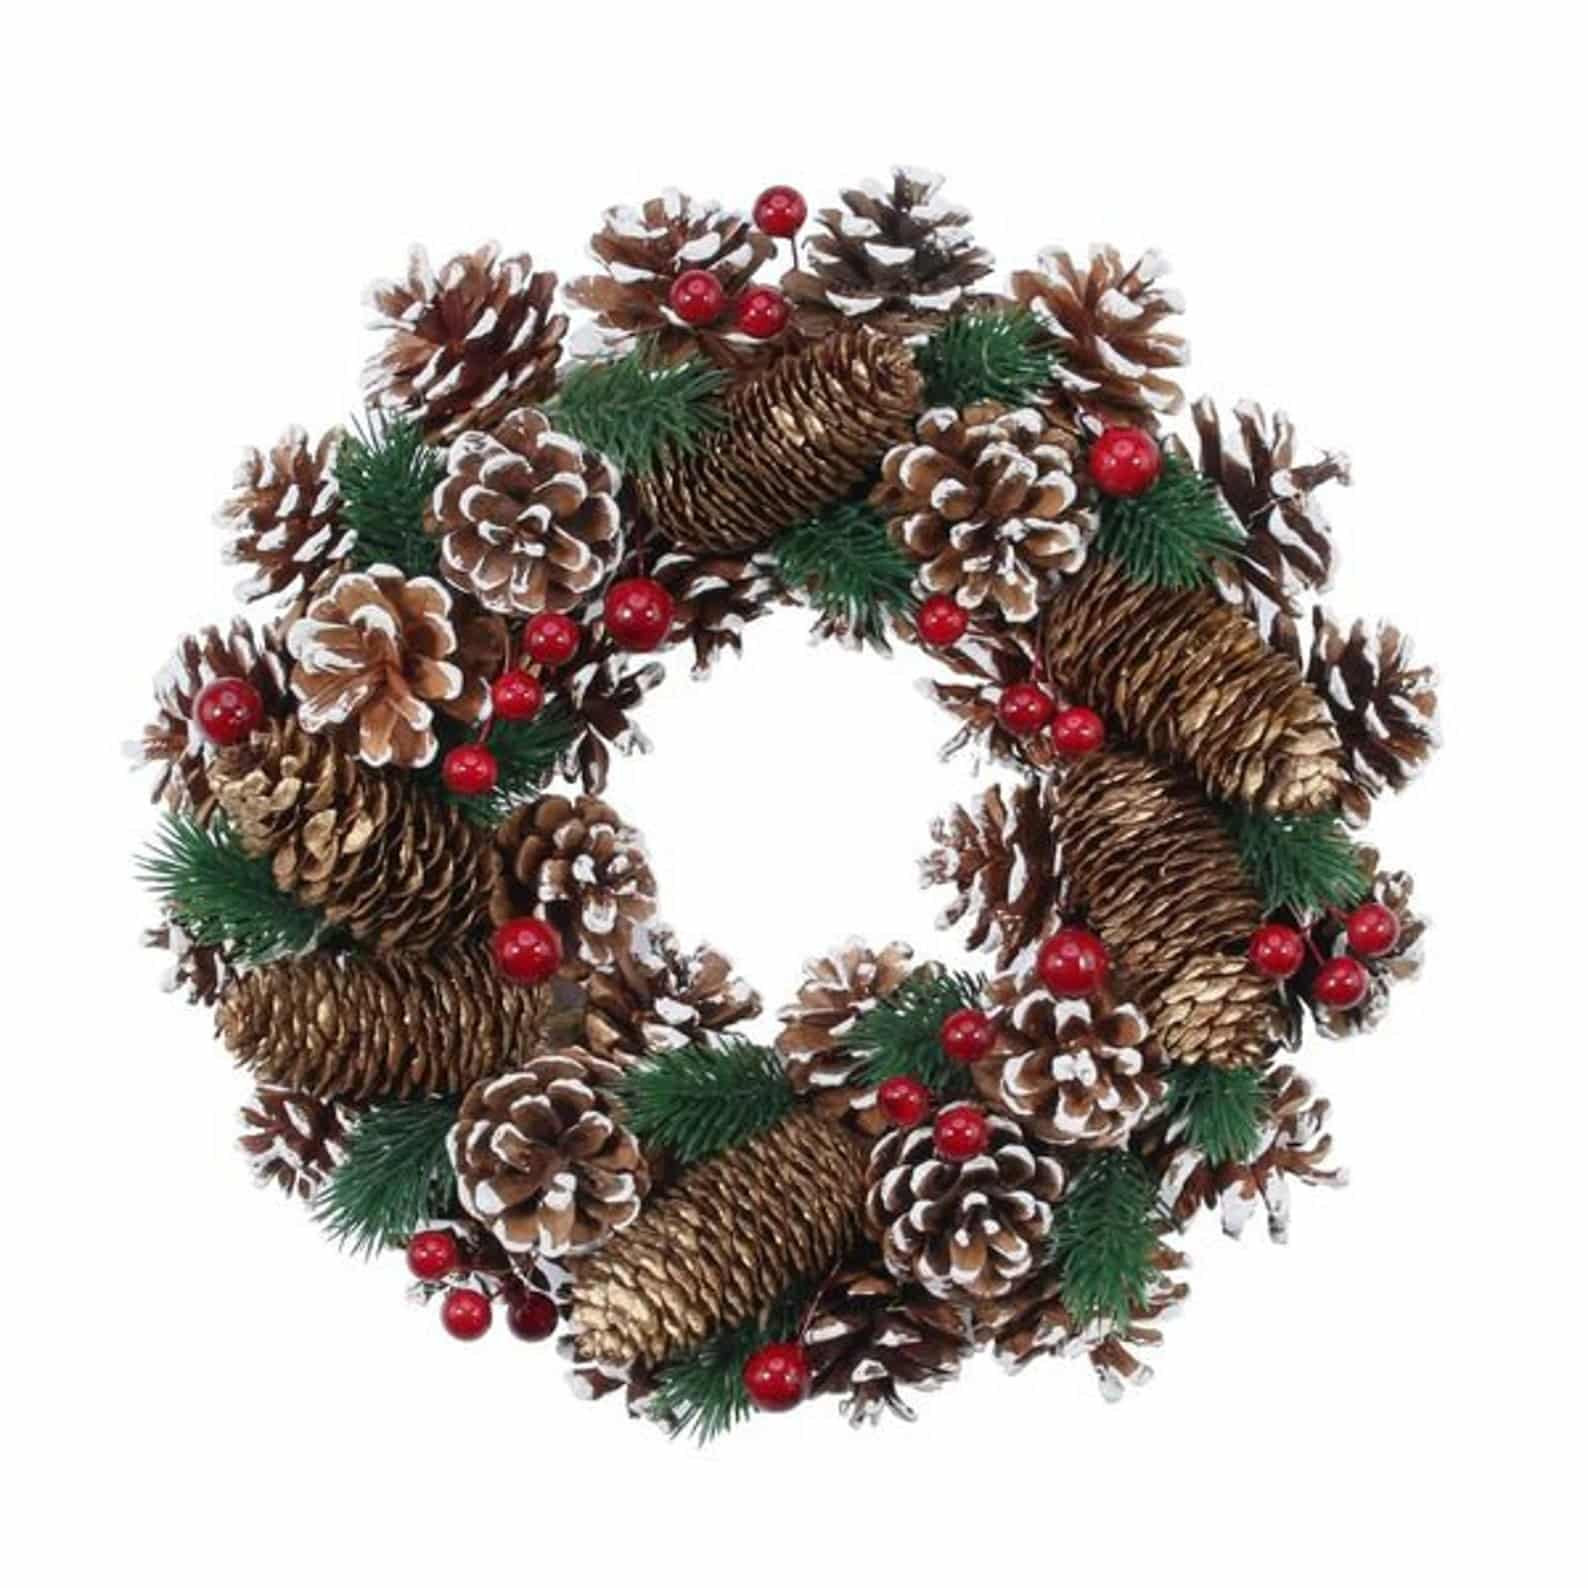 Pinecone Berry Etsy Christmas Wreaths